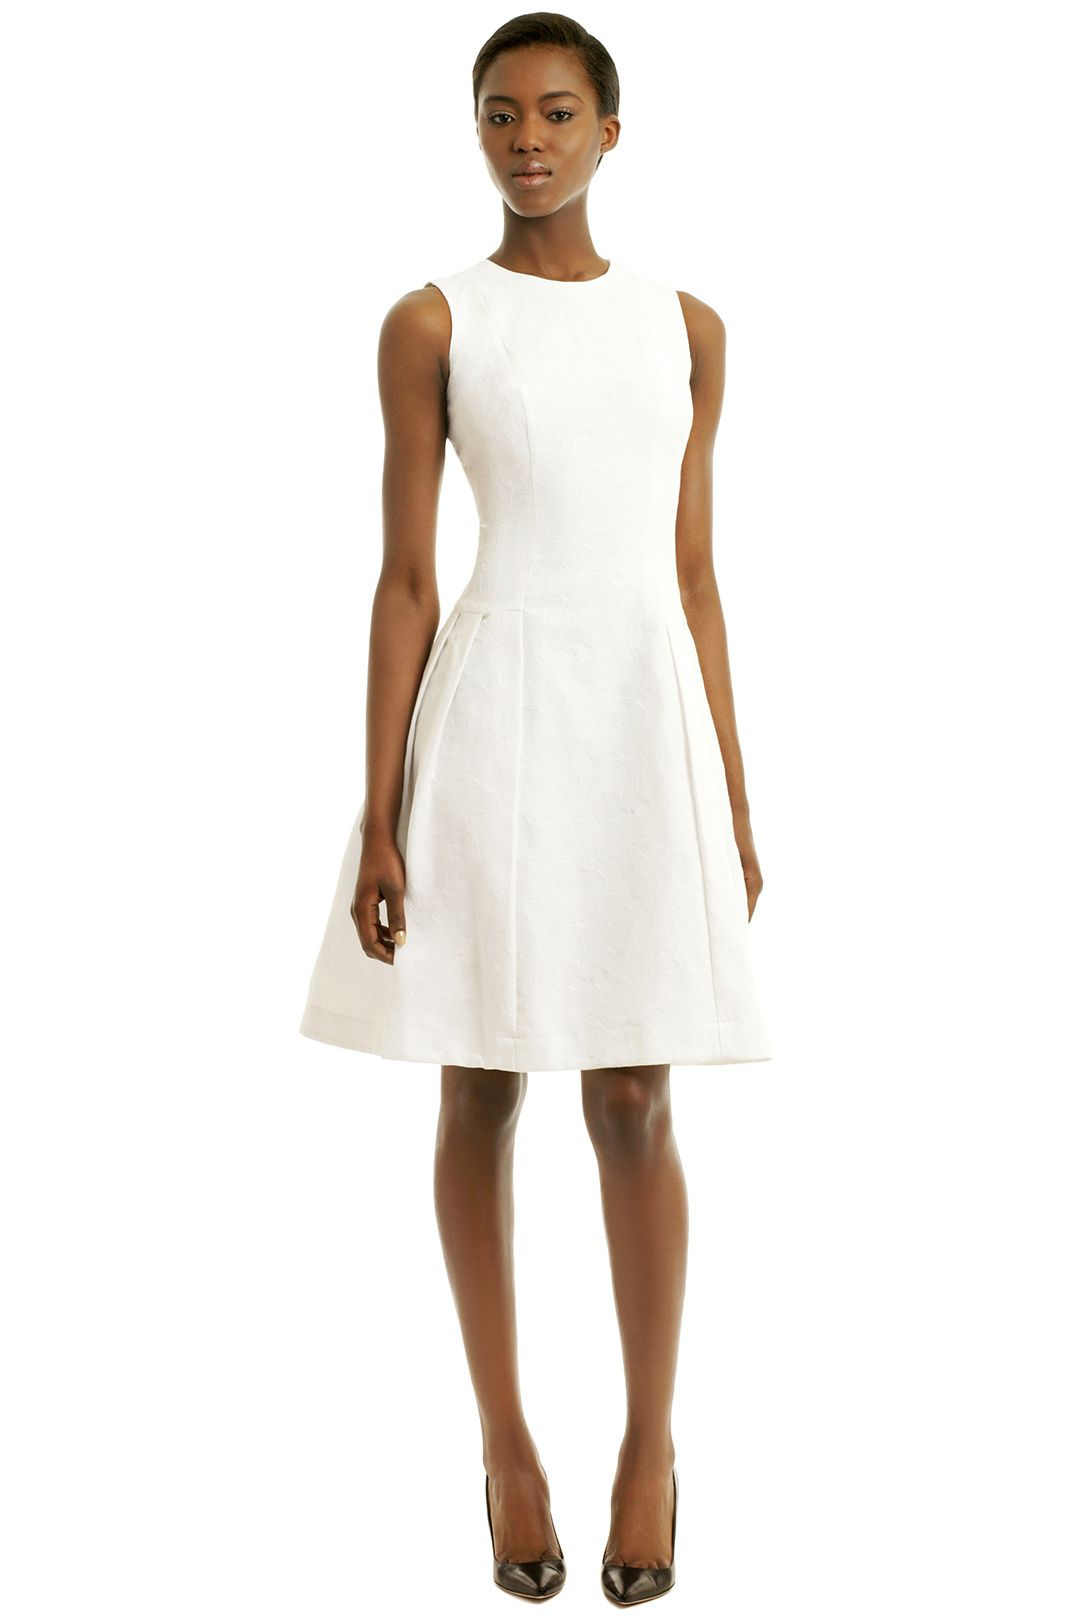 White Halo Dress By Carmen Marc Valvo For 85 Only At The Runway